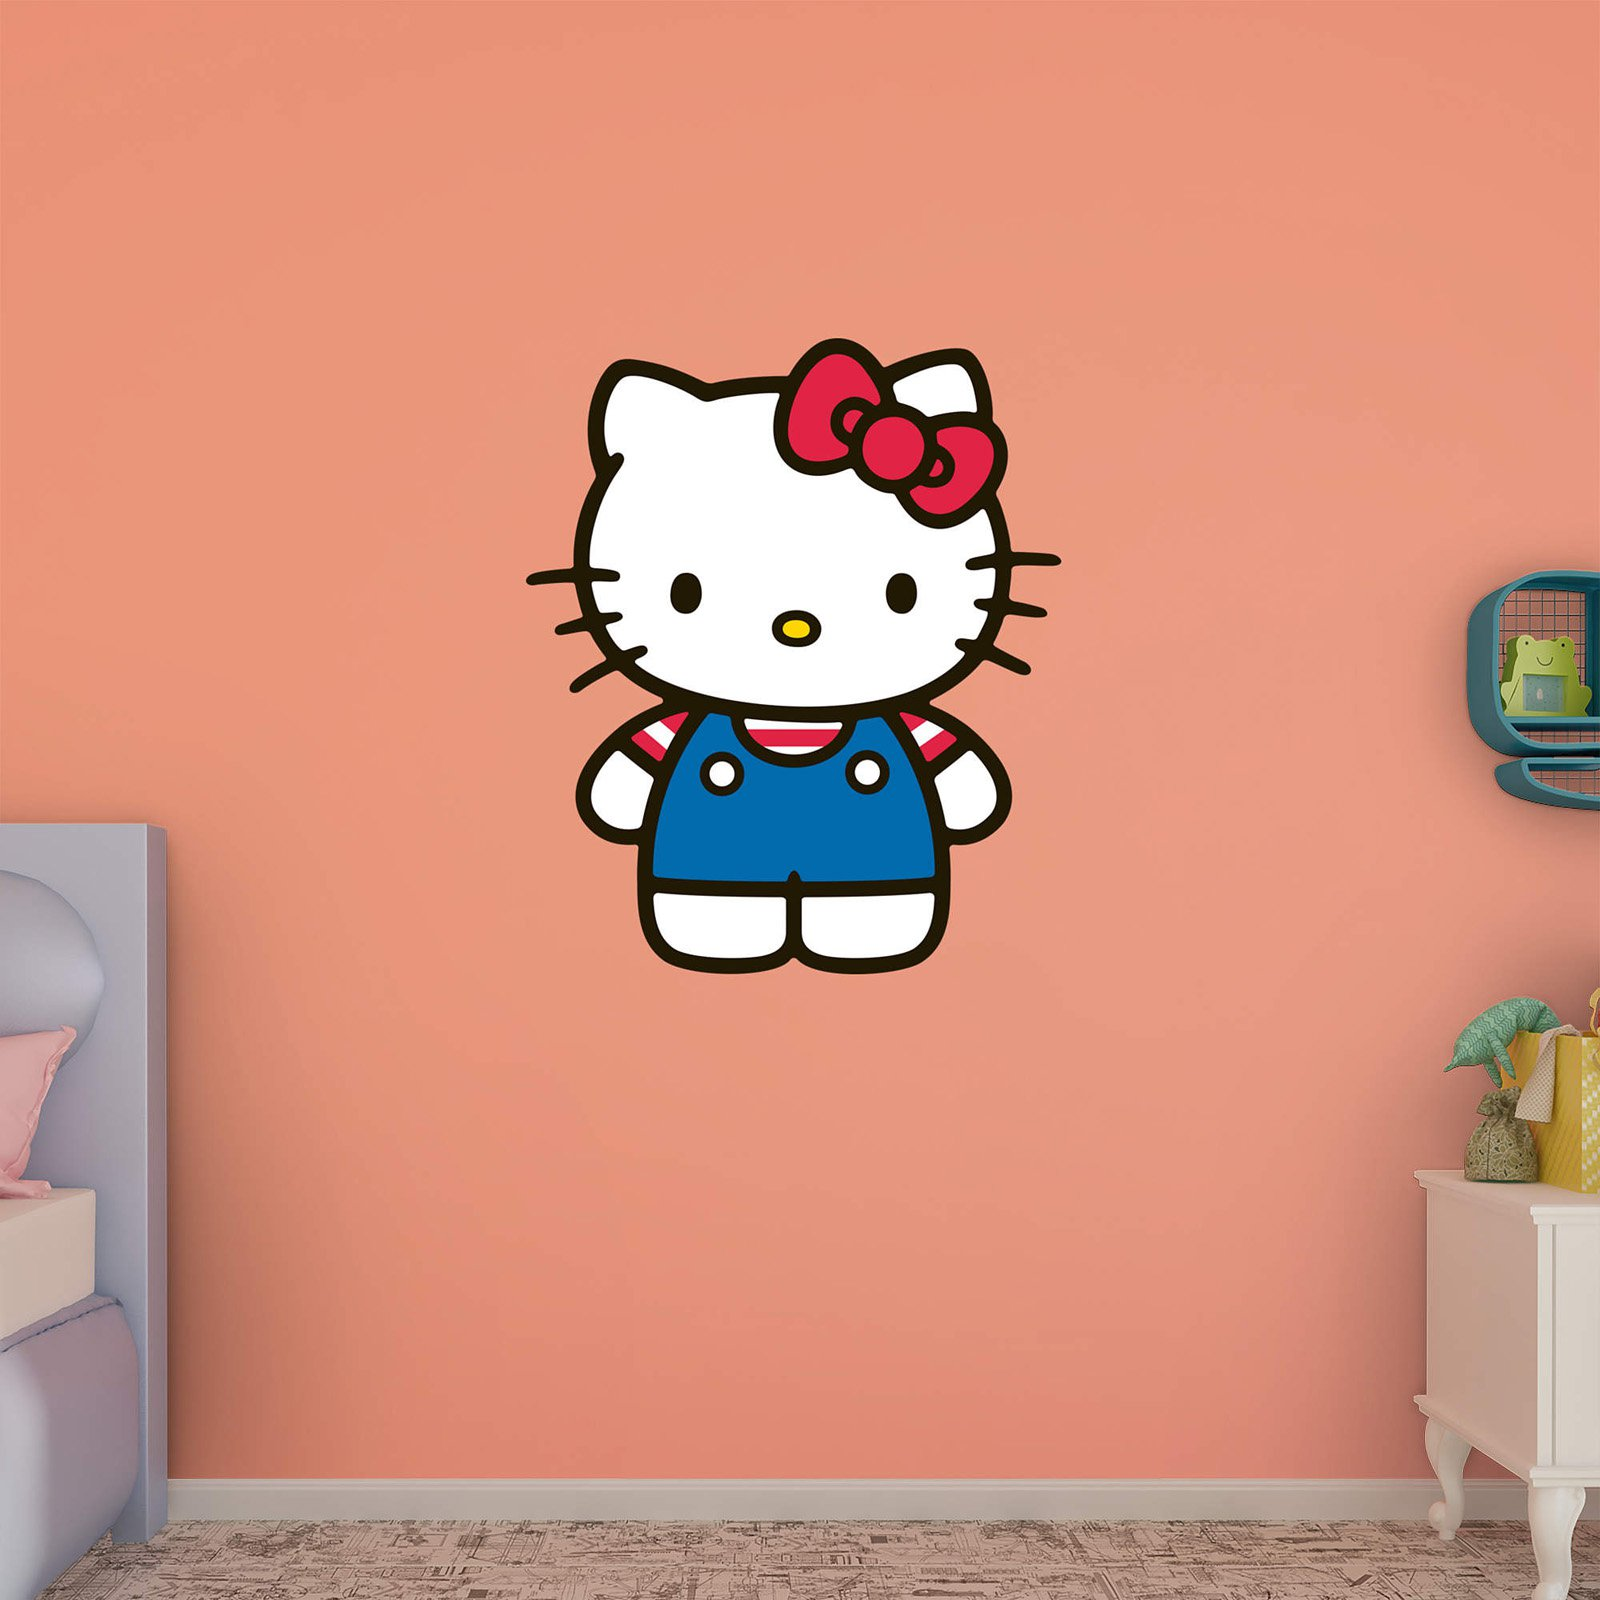 Fathead Hello Kitty Wall Decal